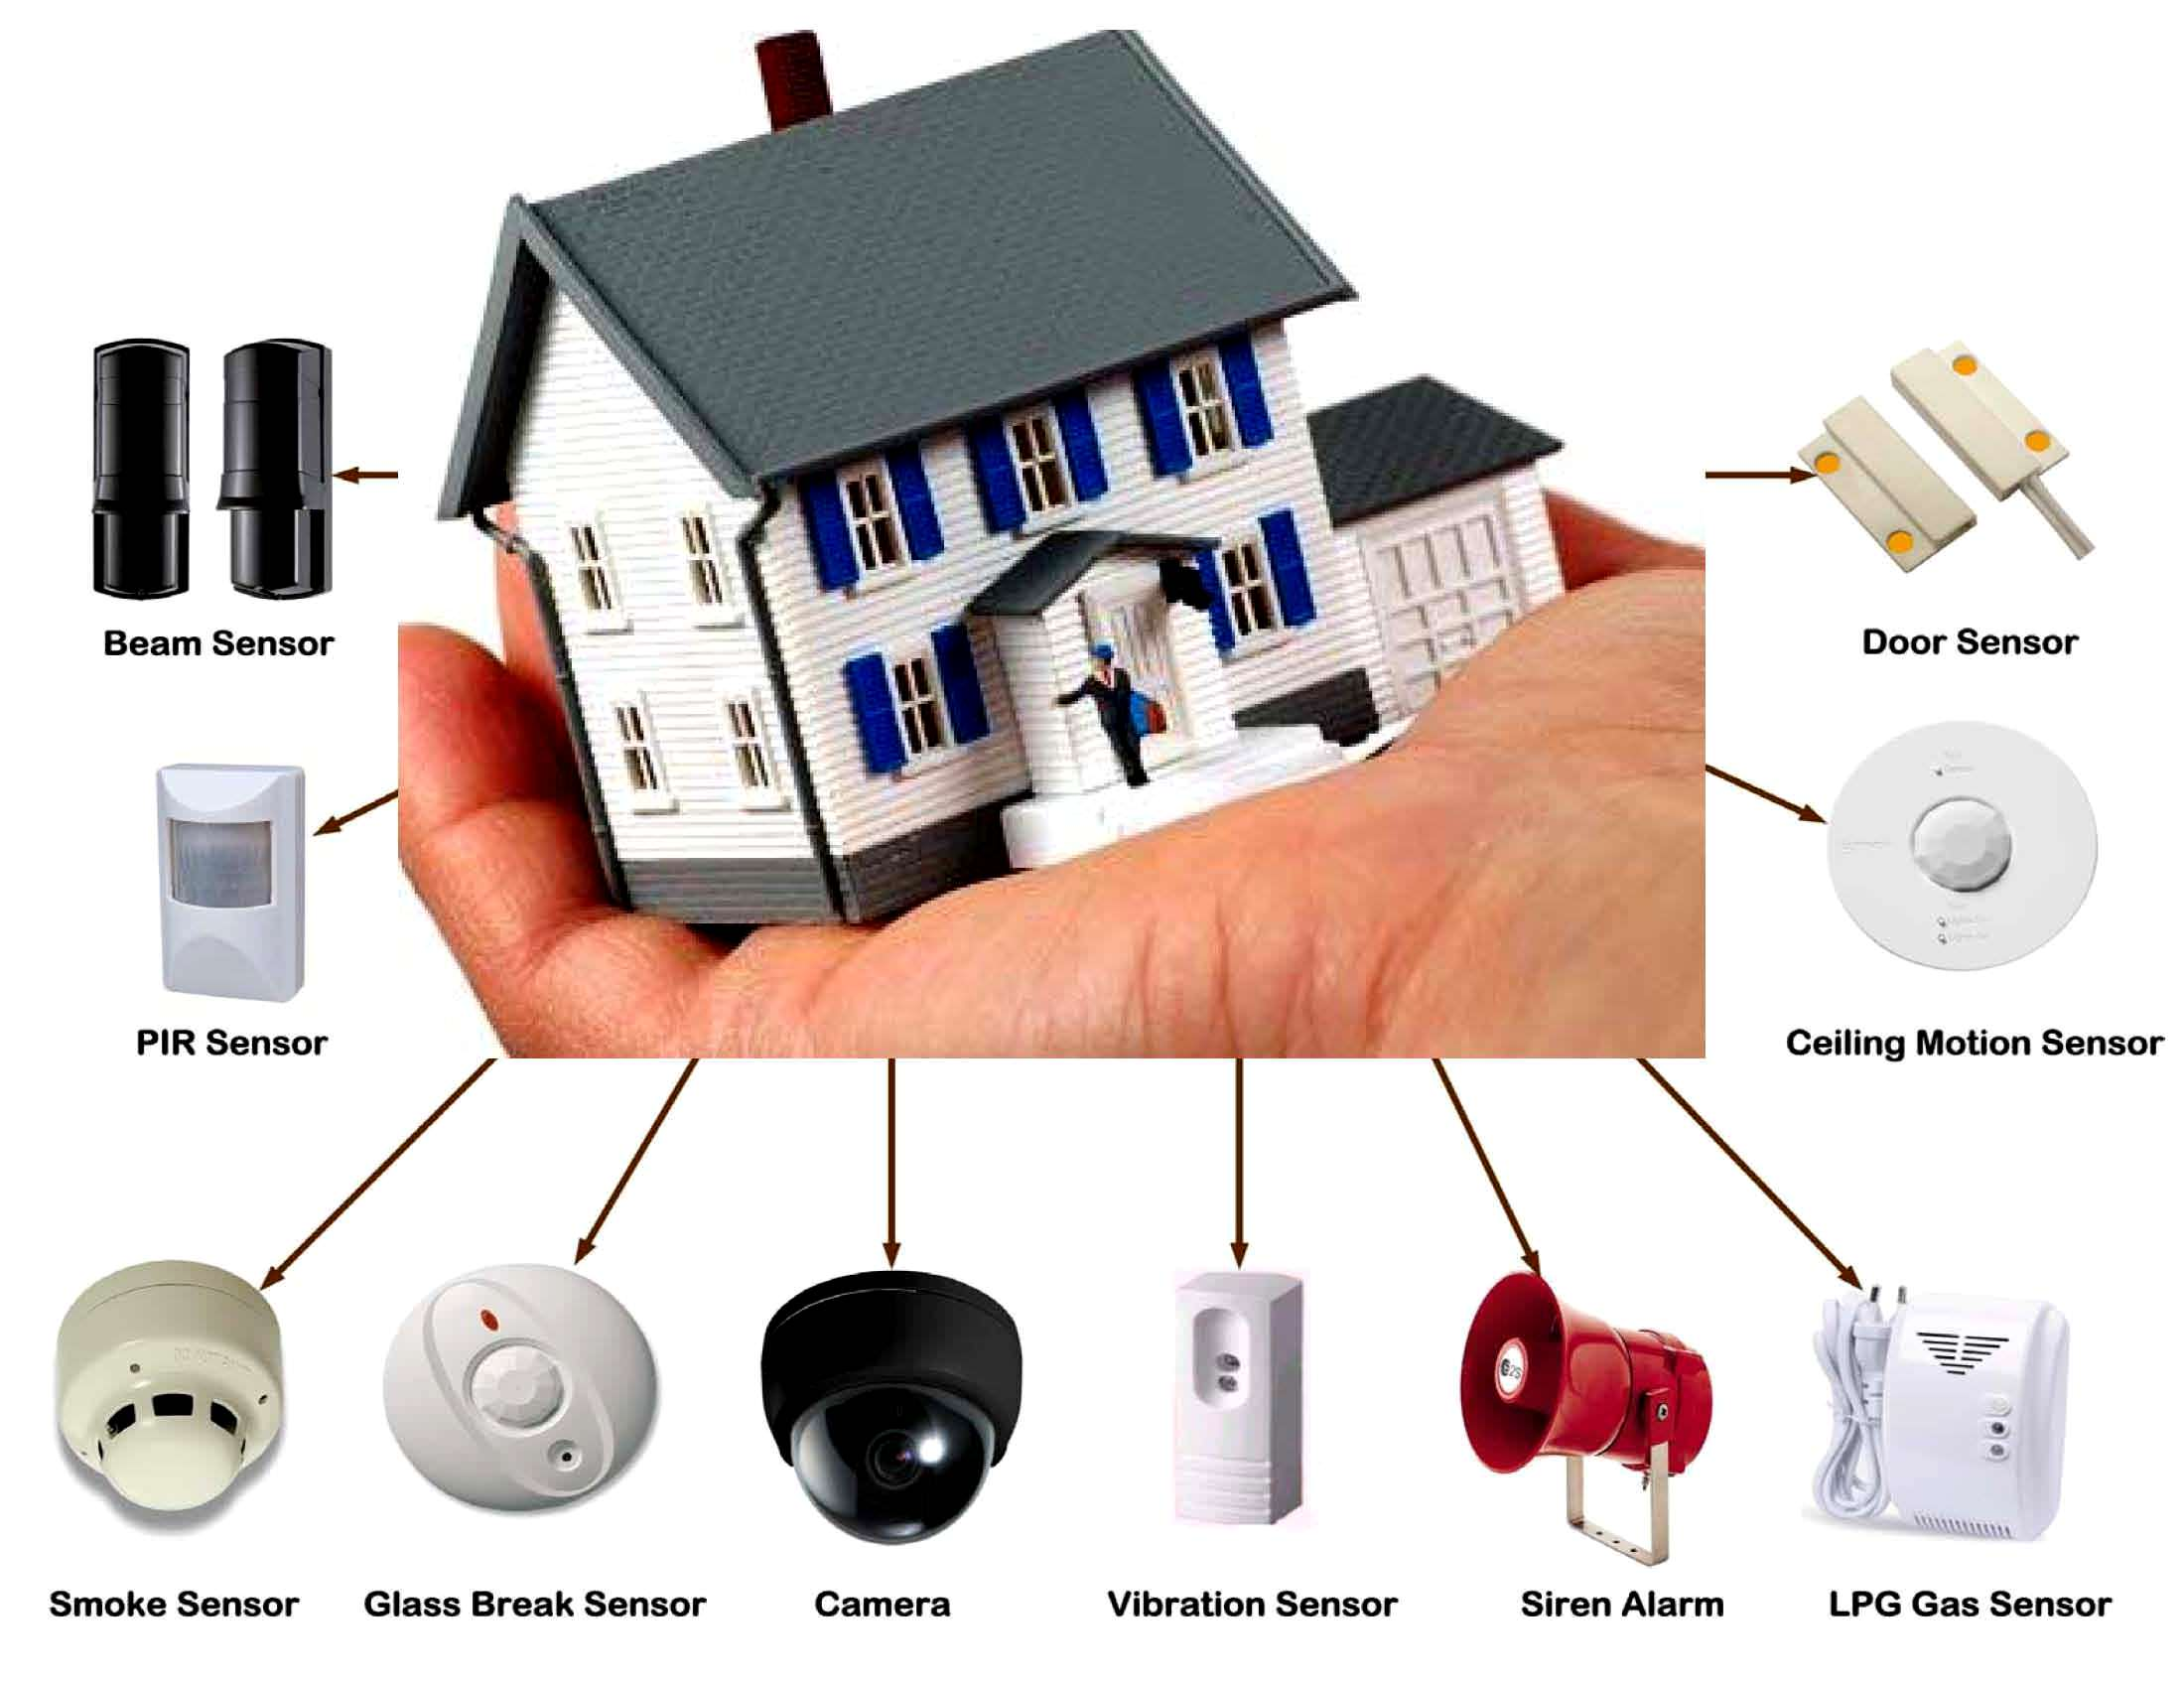 Top 5 Gadgets For Home Security Technology Vista